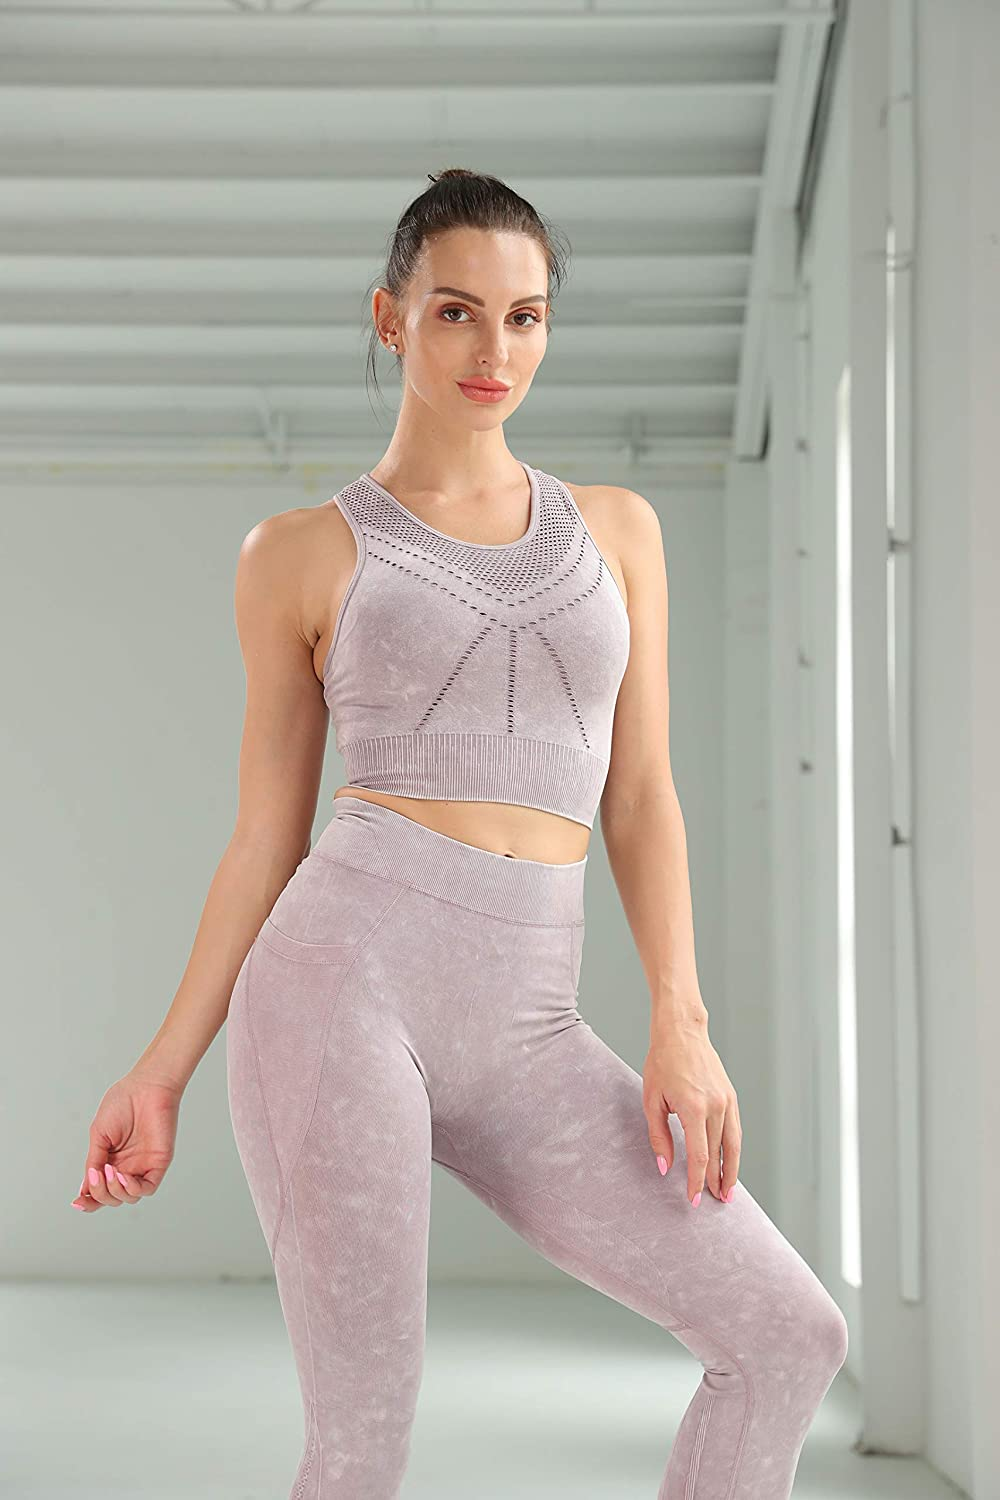 AABB Women/'s Workout 2 Pieces Suits-Seamless Streth Sports Bra and High Waist Leggings Gym Clothes